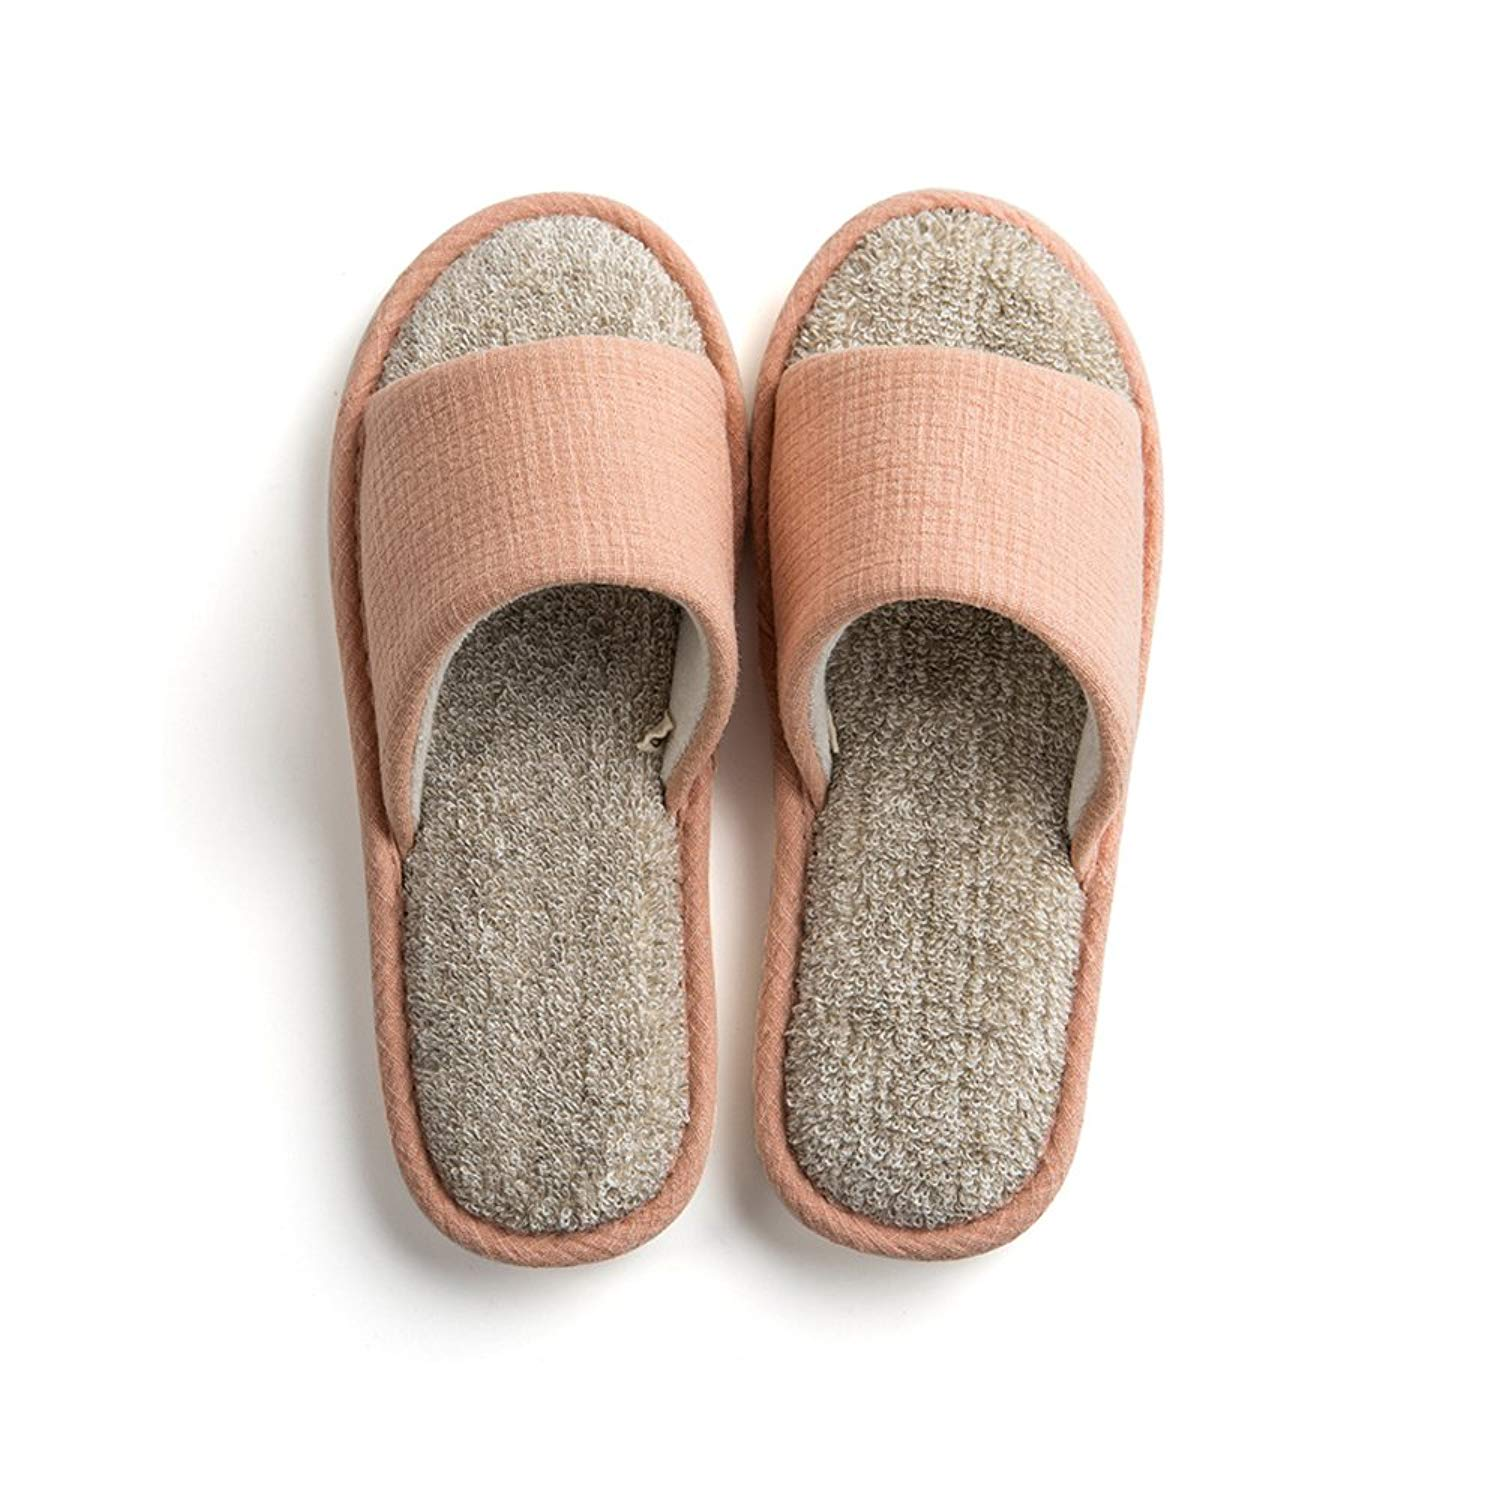 Paangkei Unisex Indoor Home Cotton Slippers/Slide,Womens/Mens Open Toe Spring/Summer/Autumn Indoor House Towel Cloth Shoes